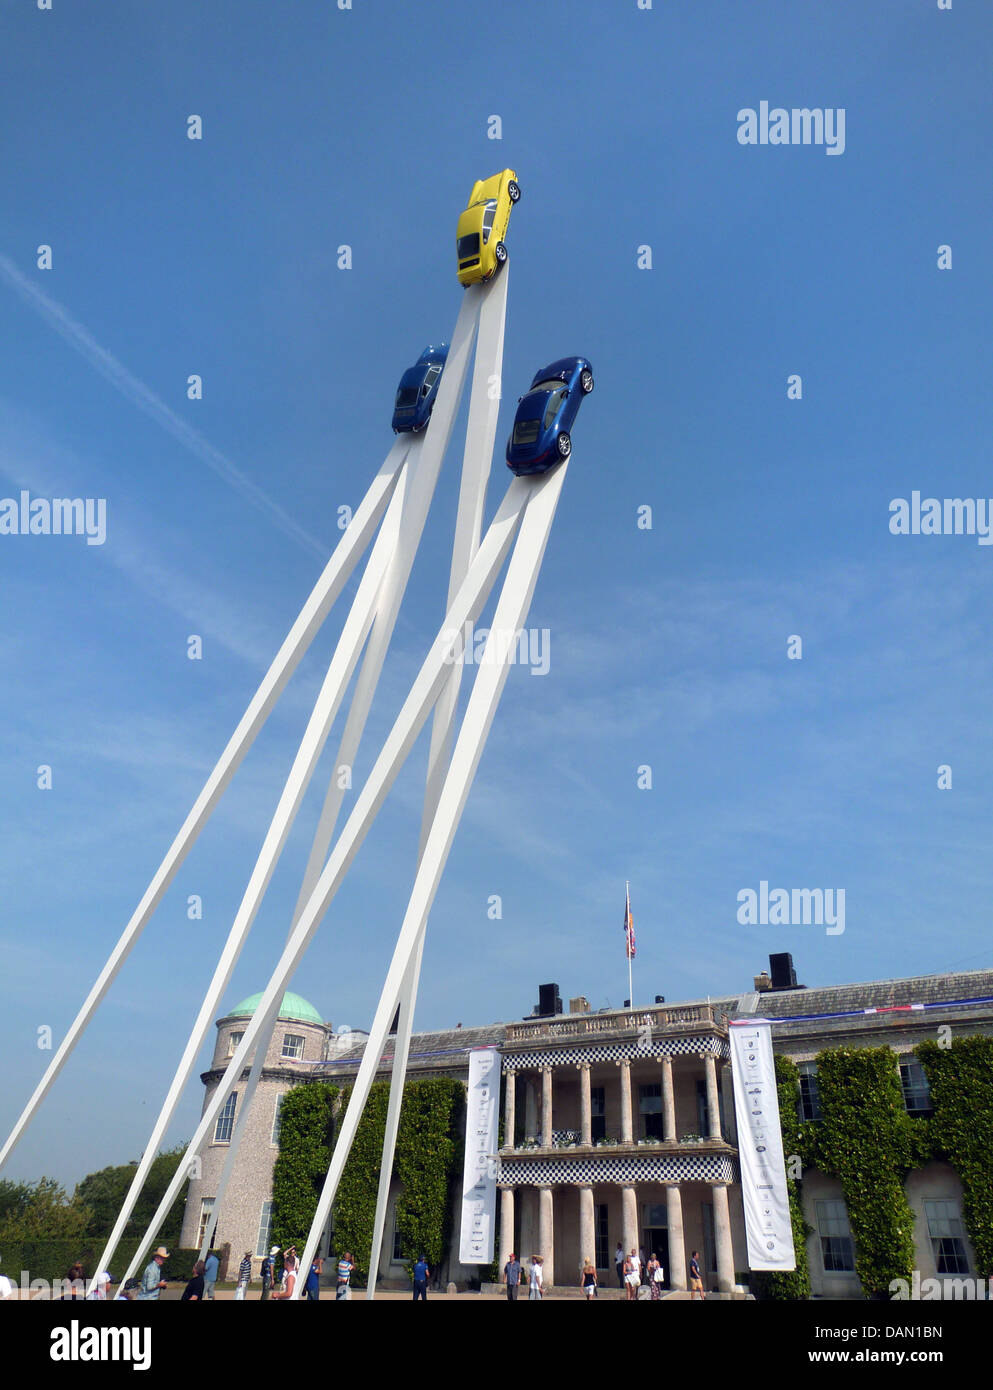 Goodwood Festival of speed 2013 sculpture outside Goodwood House - Stock Image